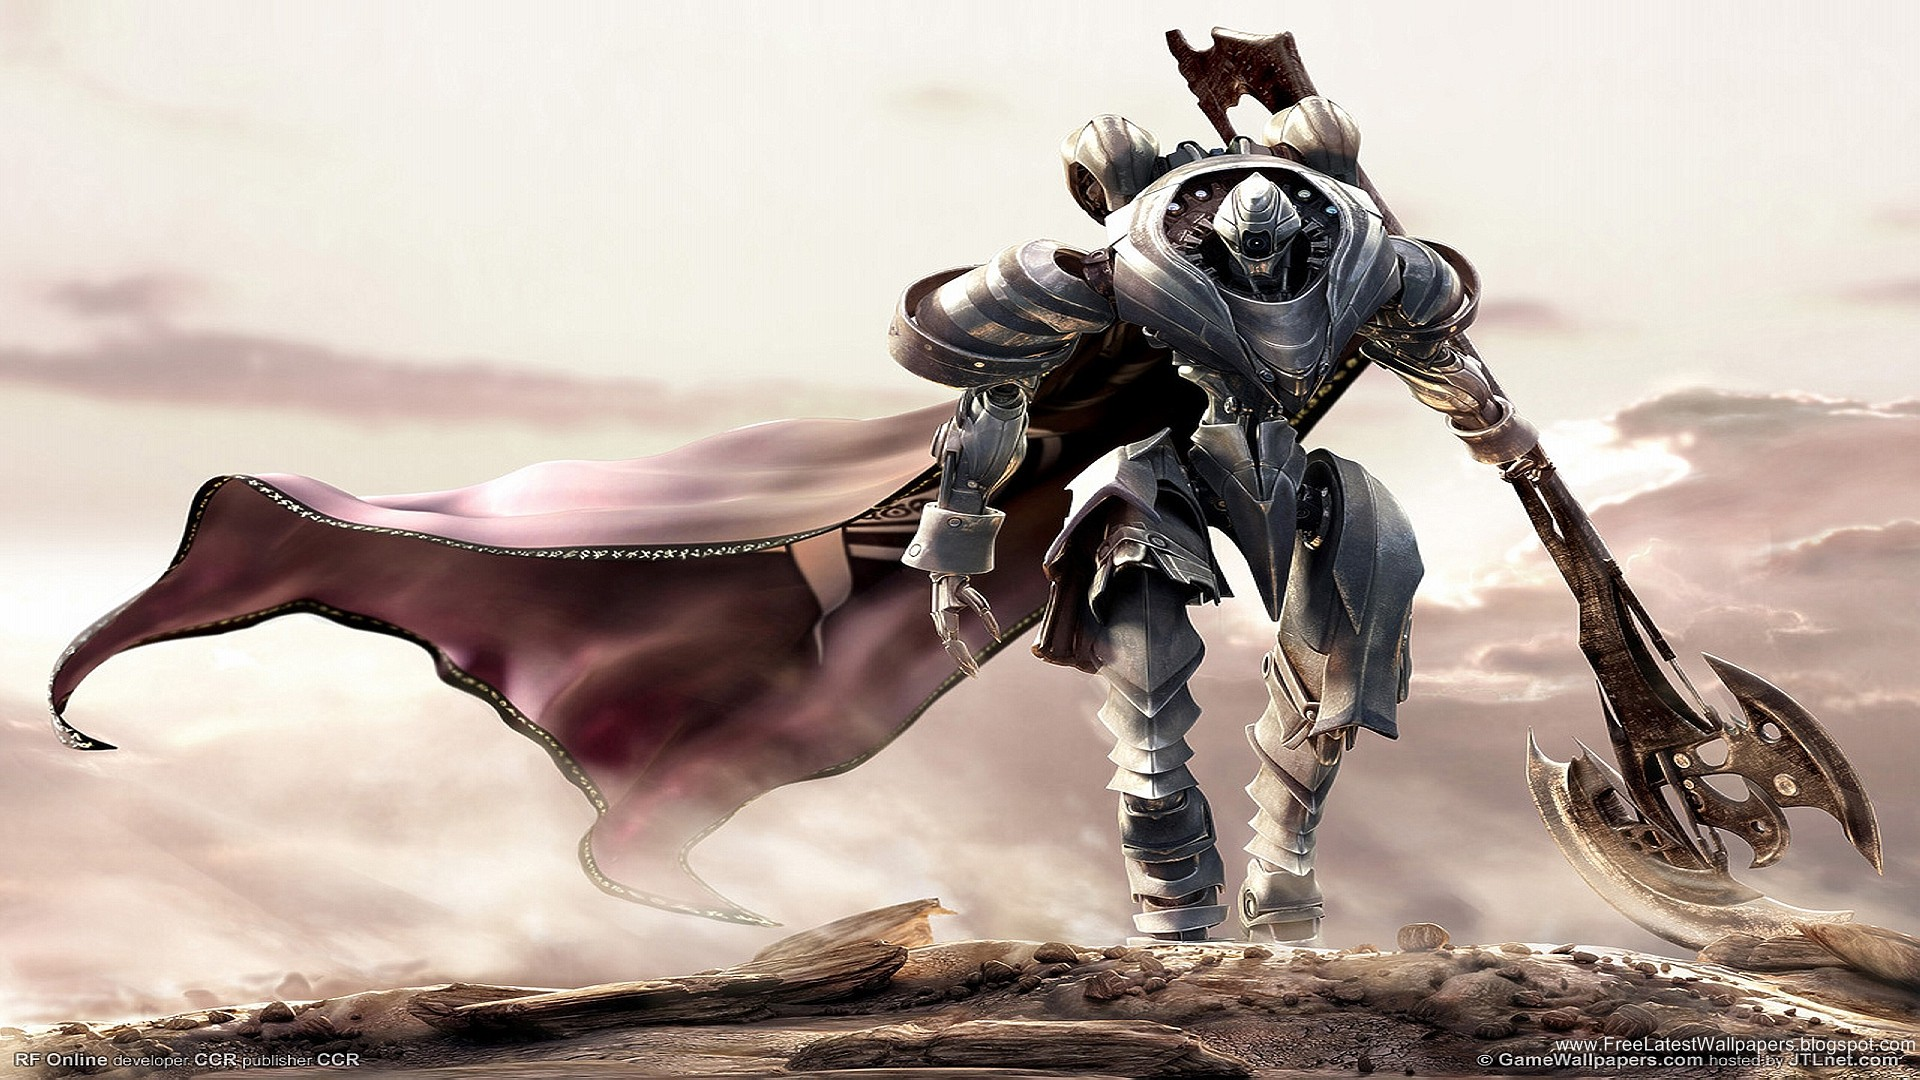 Awesome Video Game Wallpapers: Awesome HD Gaming Wallpapers